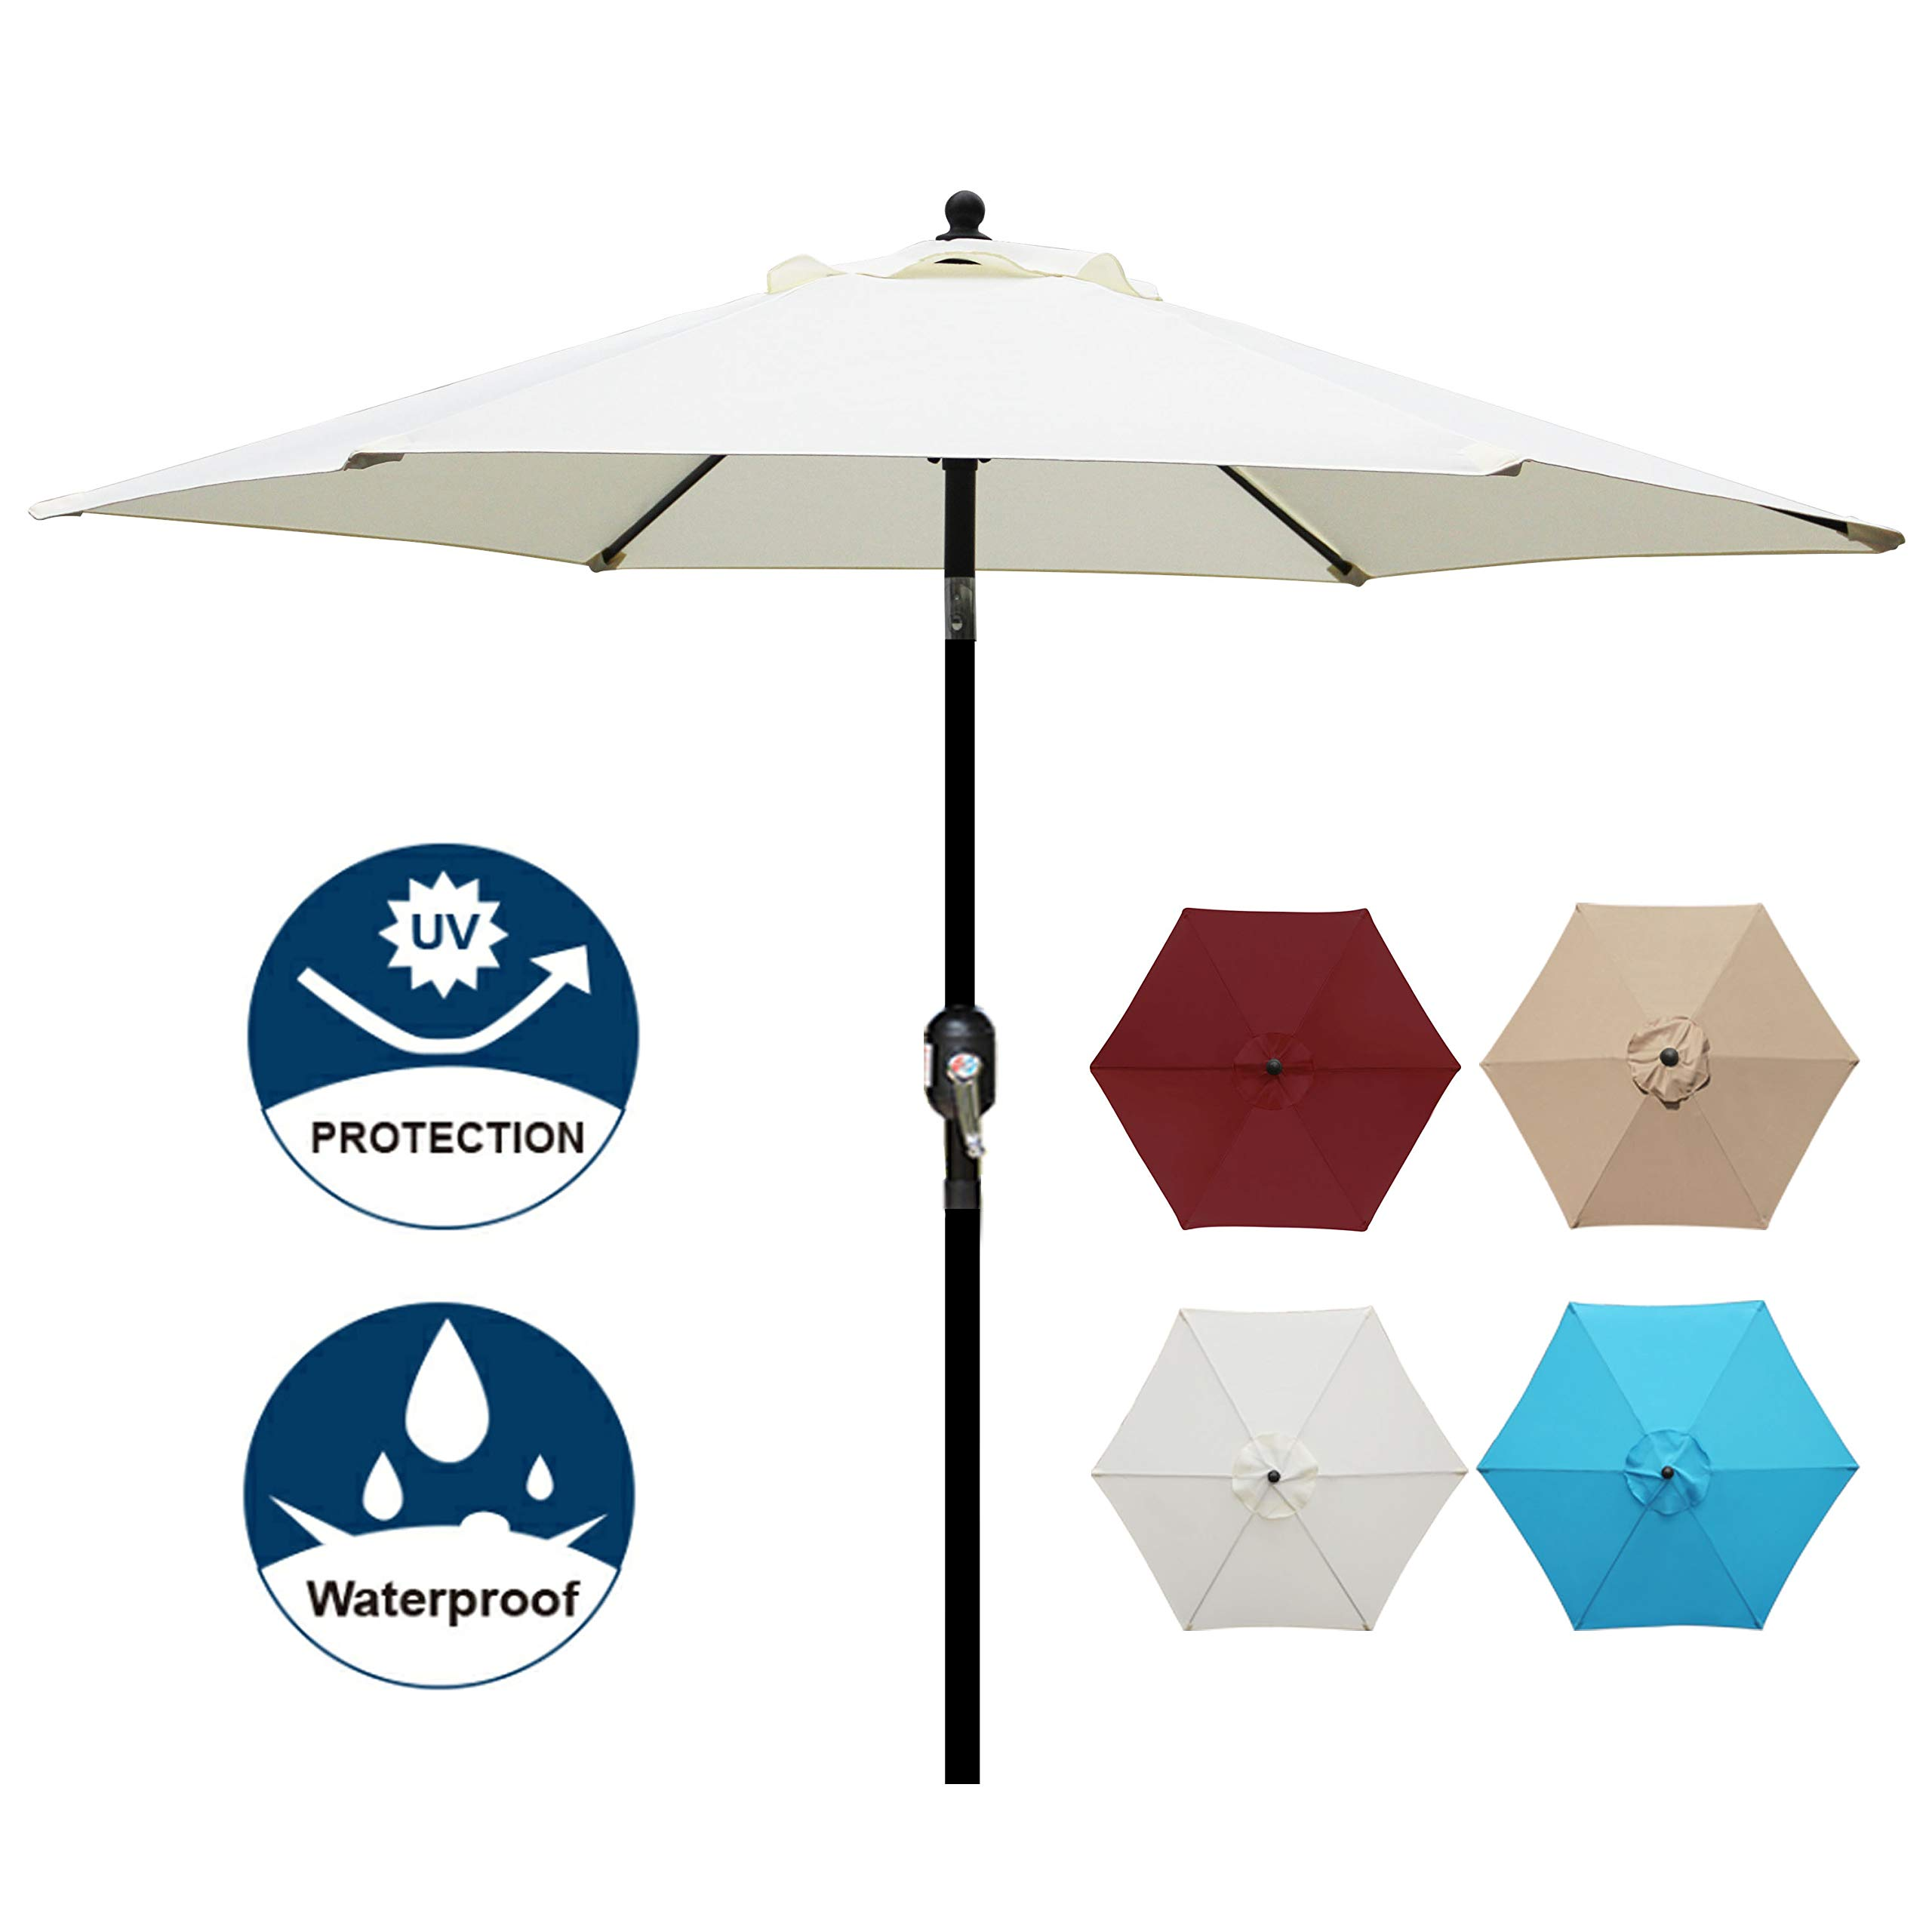 Blissun 7.5 ft Patio Umbrella, Yard Umbrella with Push Button Tilt and Crank (Beige) by Blissun